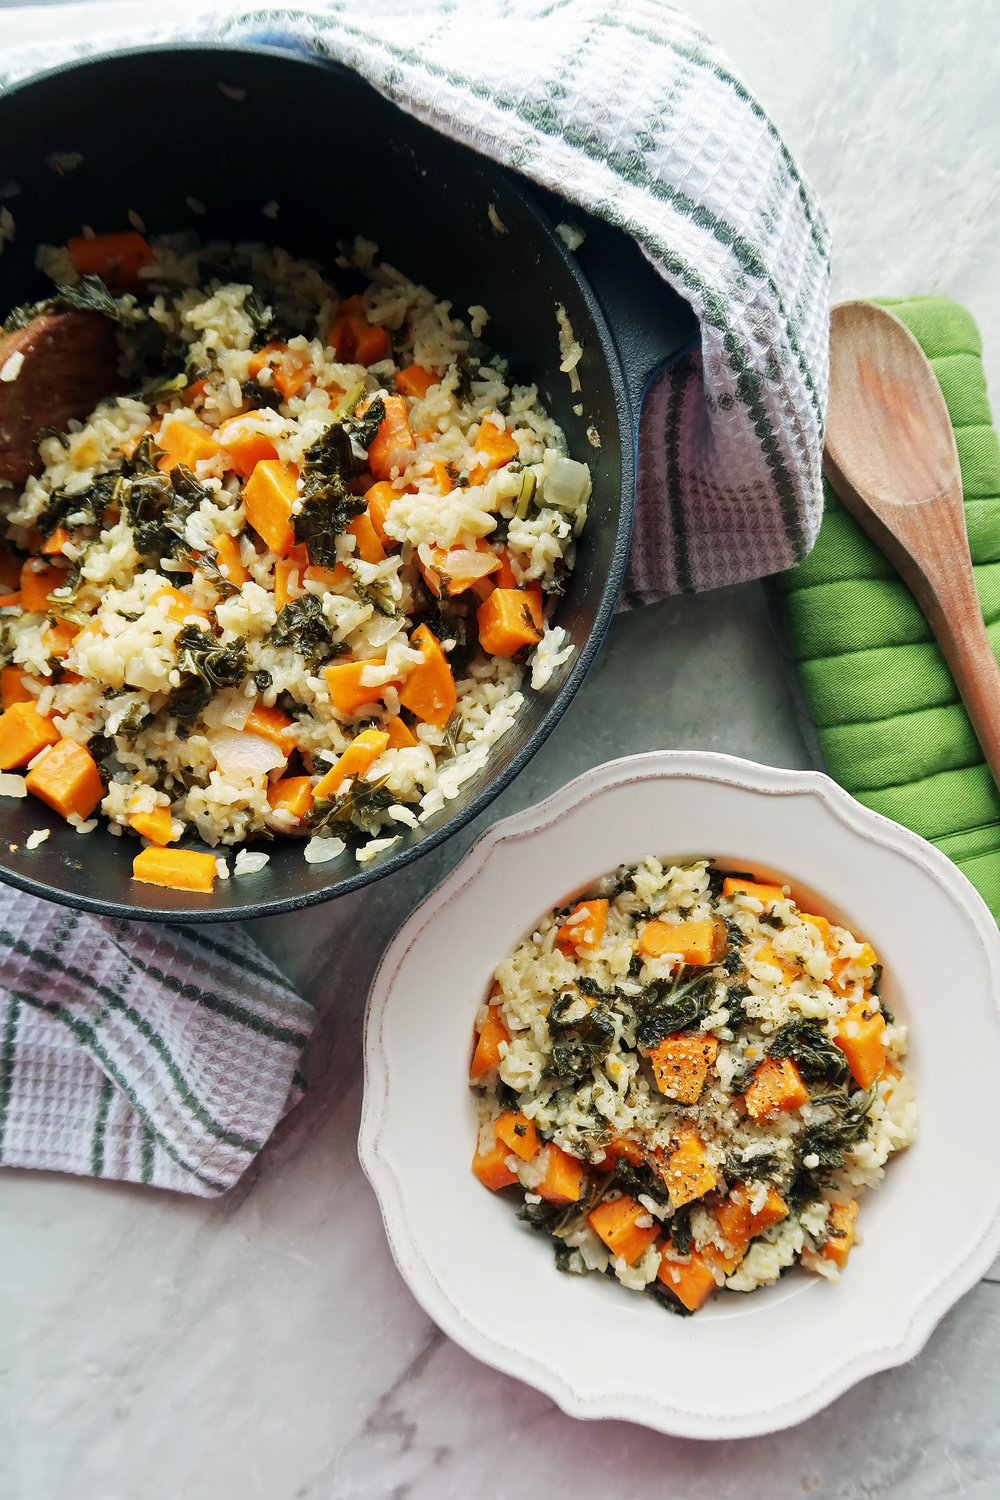 Oven-Baked Risotto with Sweet Potato and Kale: An easy, one-pot, vegetarian, gluten-free dinner. www.yayforfood.com